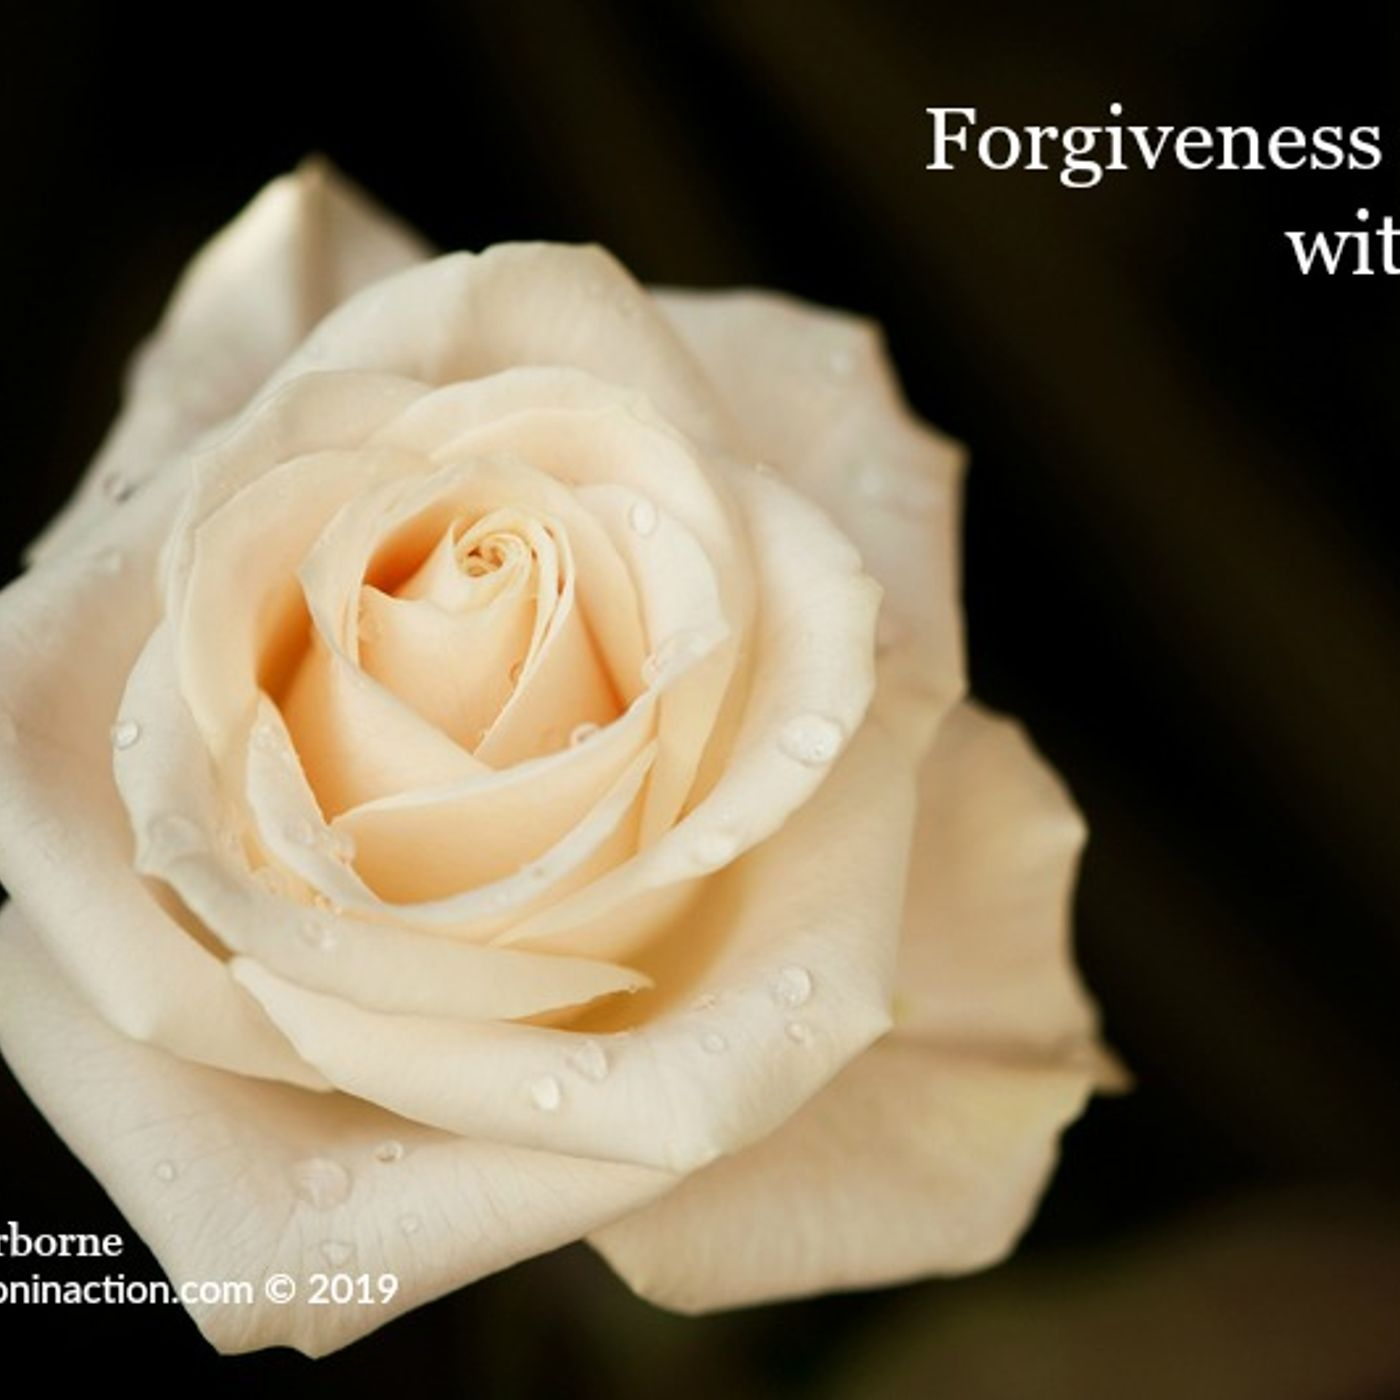 The Power Found In The Art of Forgiveness